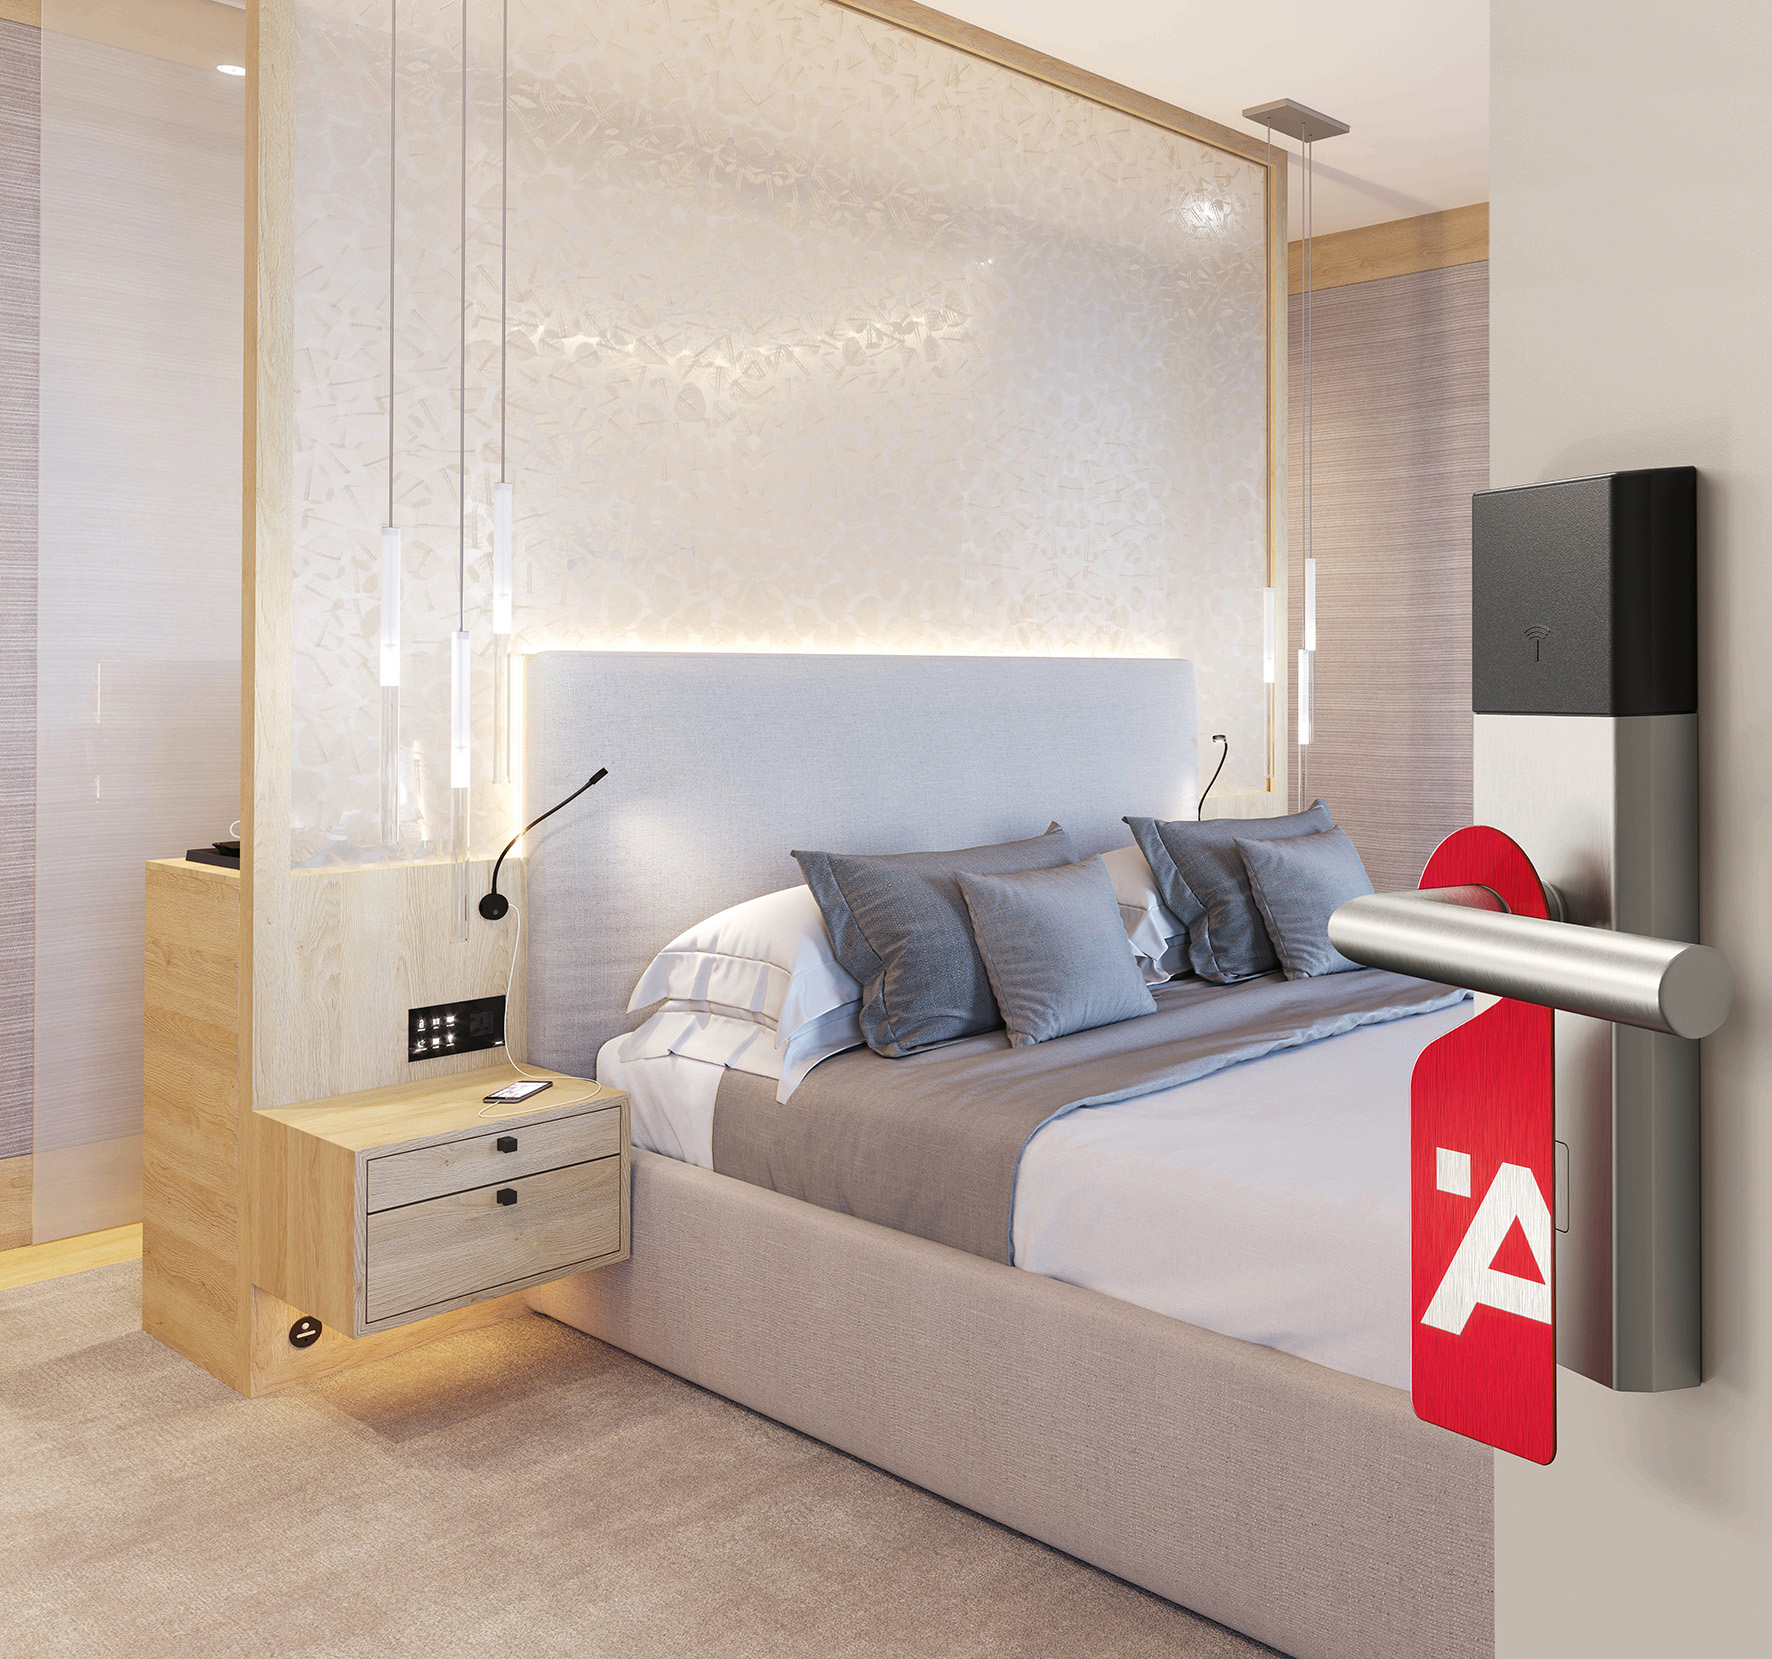 One Room, one Face – one Style. Häfele creates the optimal conditions for target group-oriented furnishing of hotel rooms with its comprehensive, internationally available hotel assortment, which contains more than 200 products.